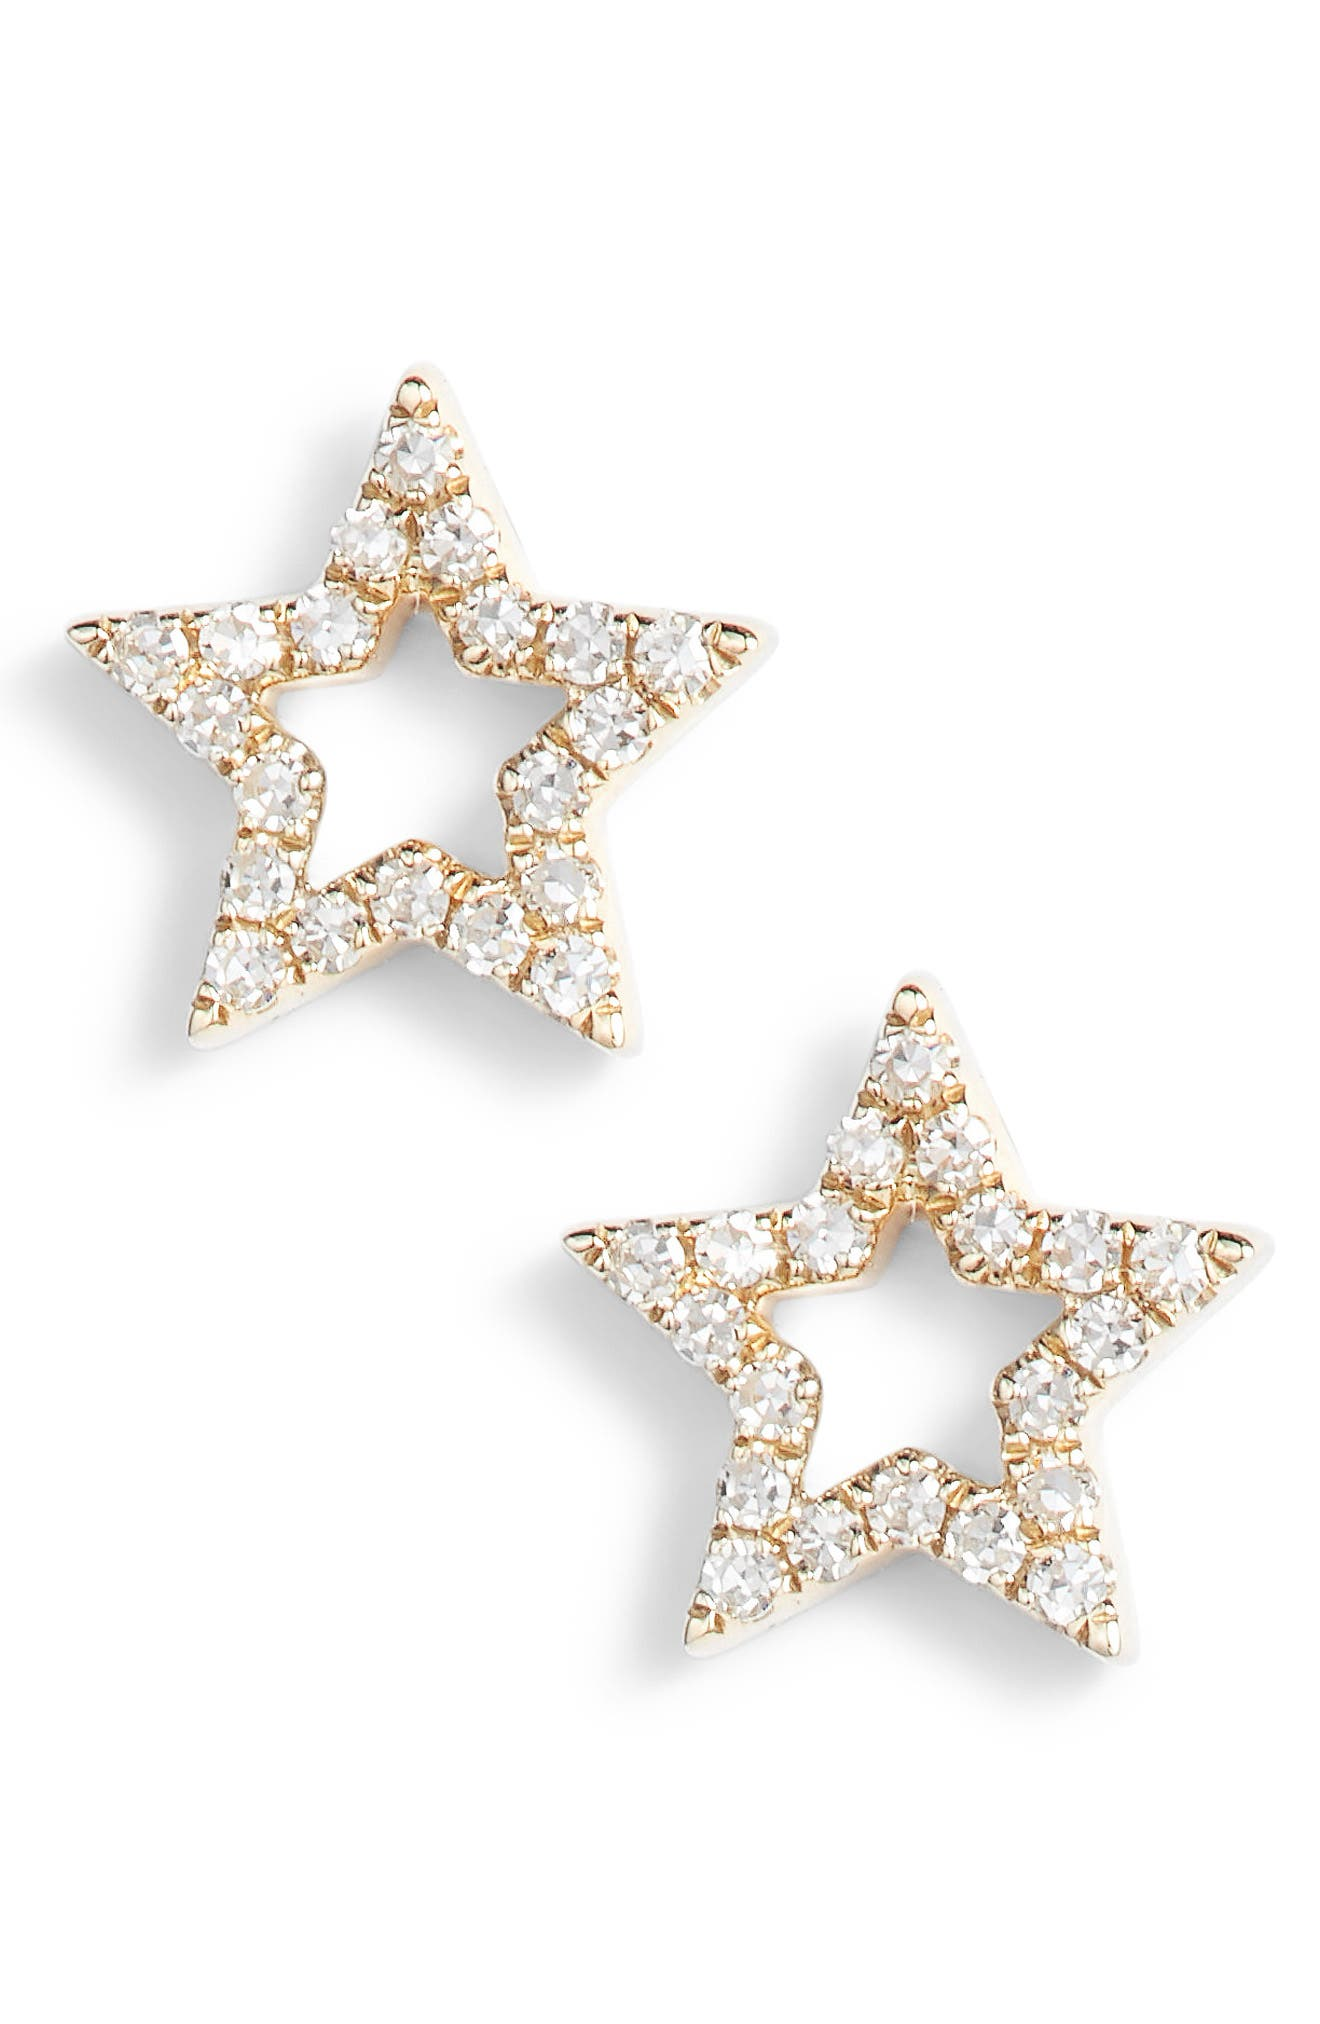 Open Star Diamond Stud Earrings,                         Main,                         color, YELLOW GOLD